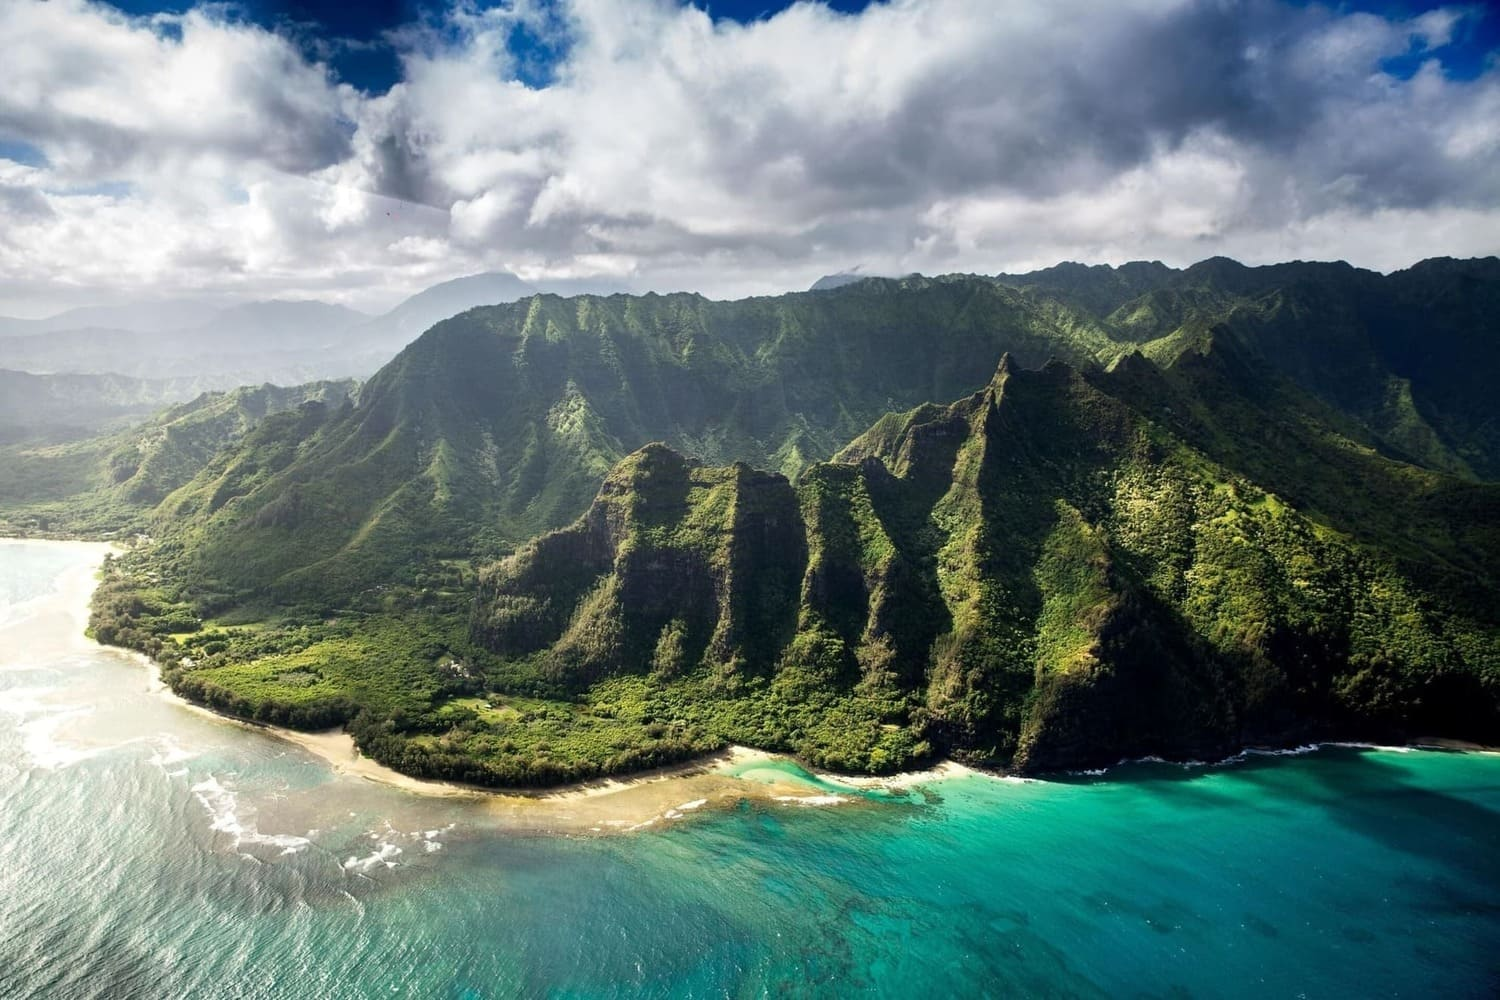 A scenic view of the mountains of Hawaii, United Stated